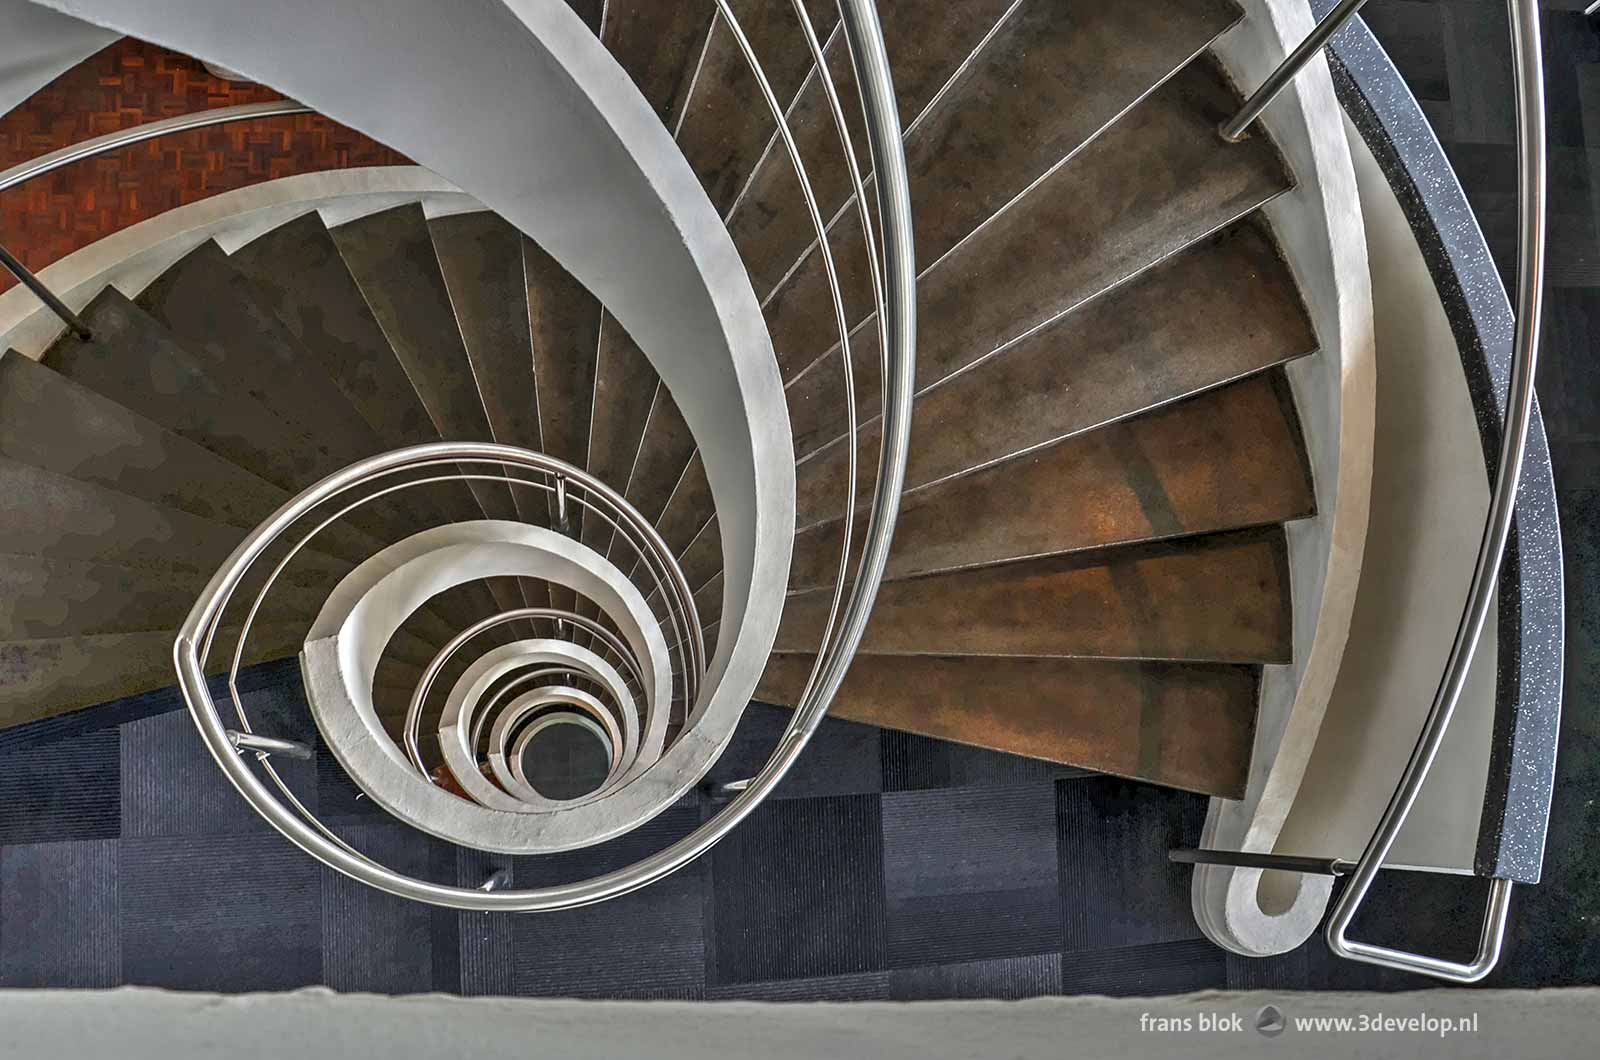 Top view of the particular spiral staircase in the building industry Goudsesingel in Rotterdam, designed by architect Maaskant.